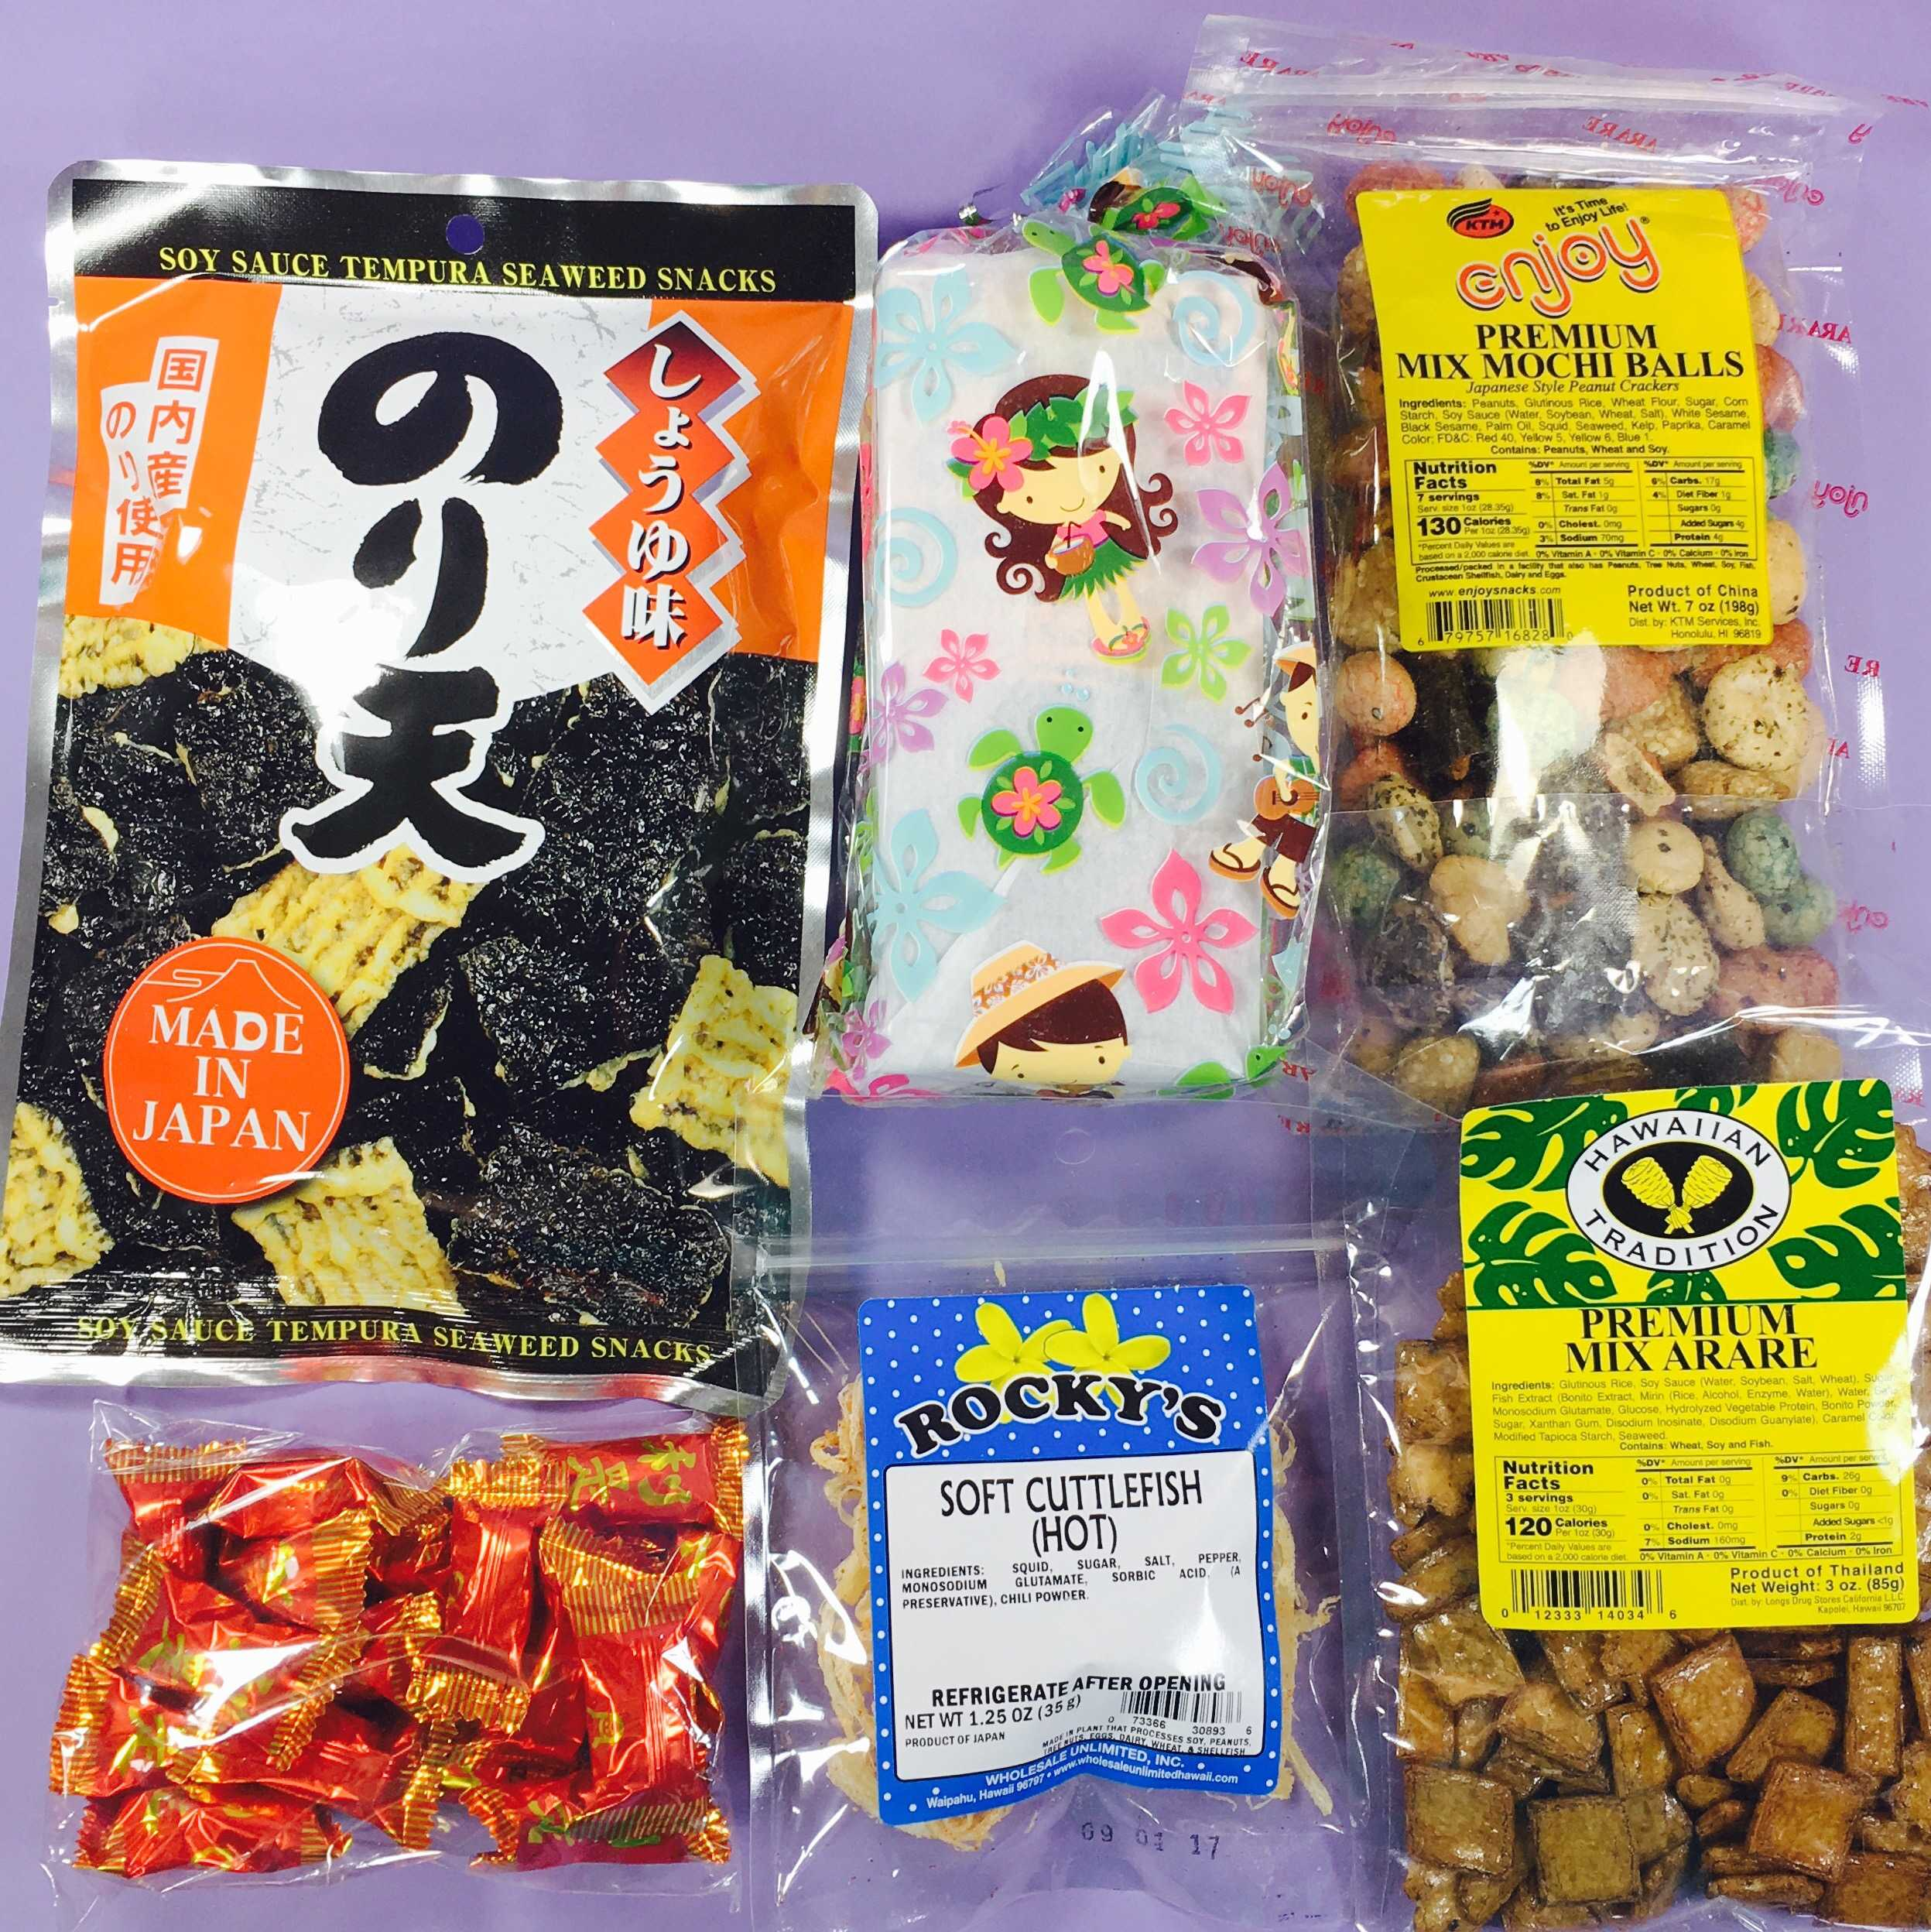 Aloha Snack Pack January 2017 Subscription Box Review